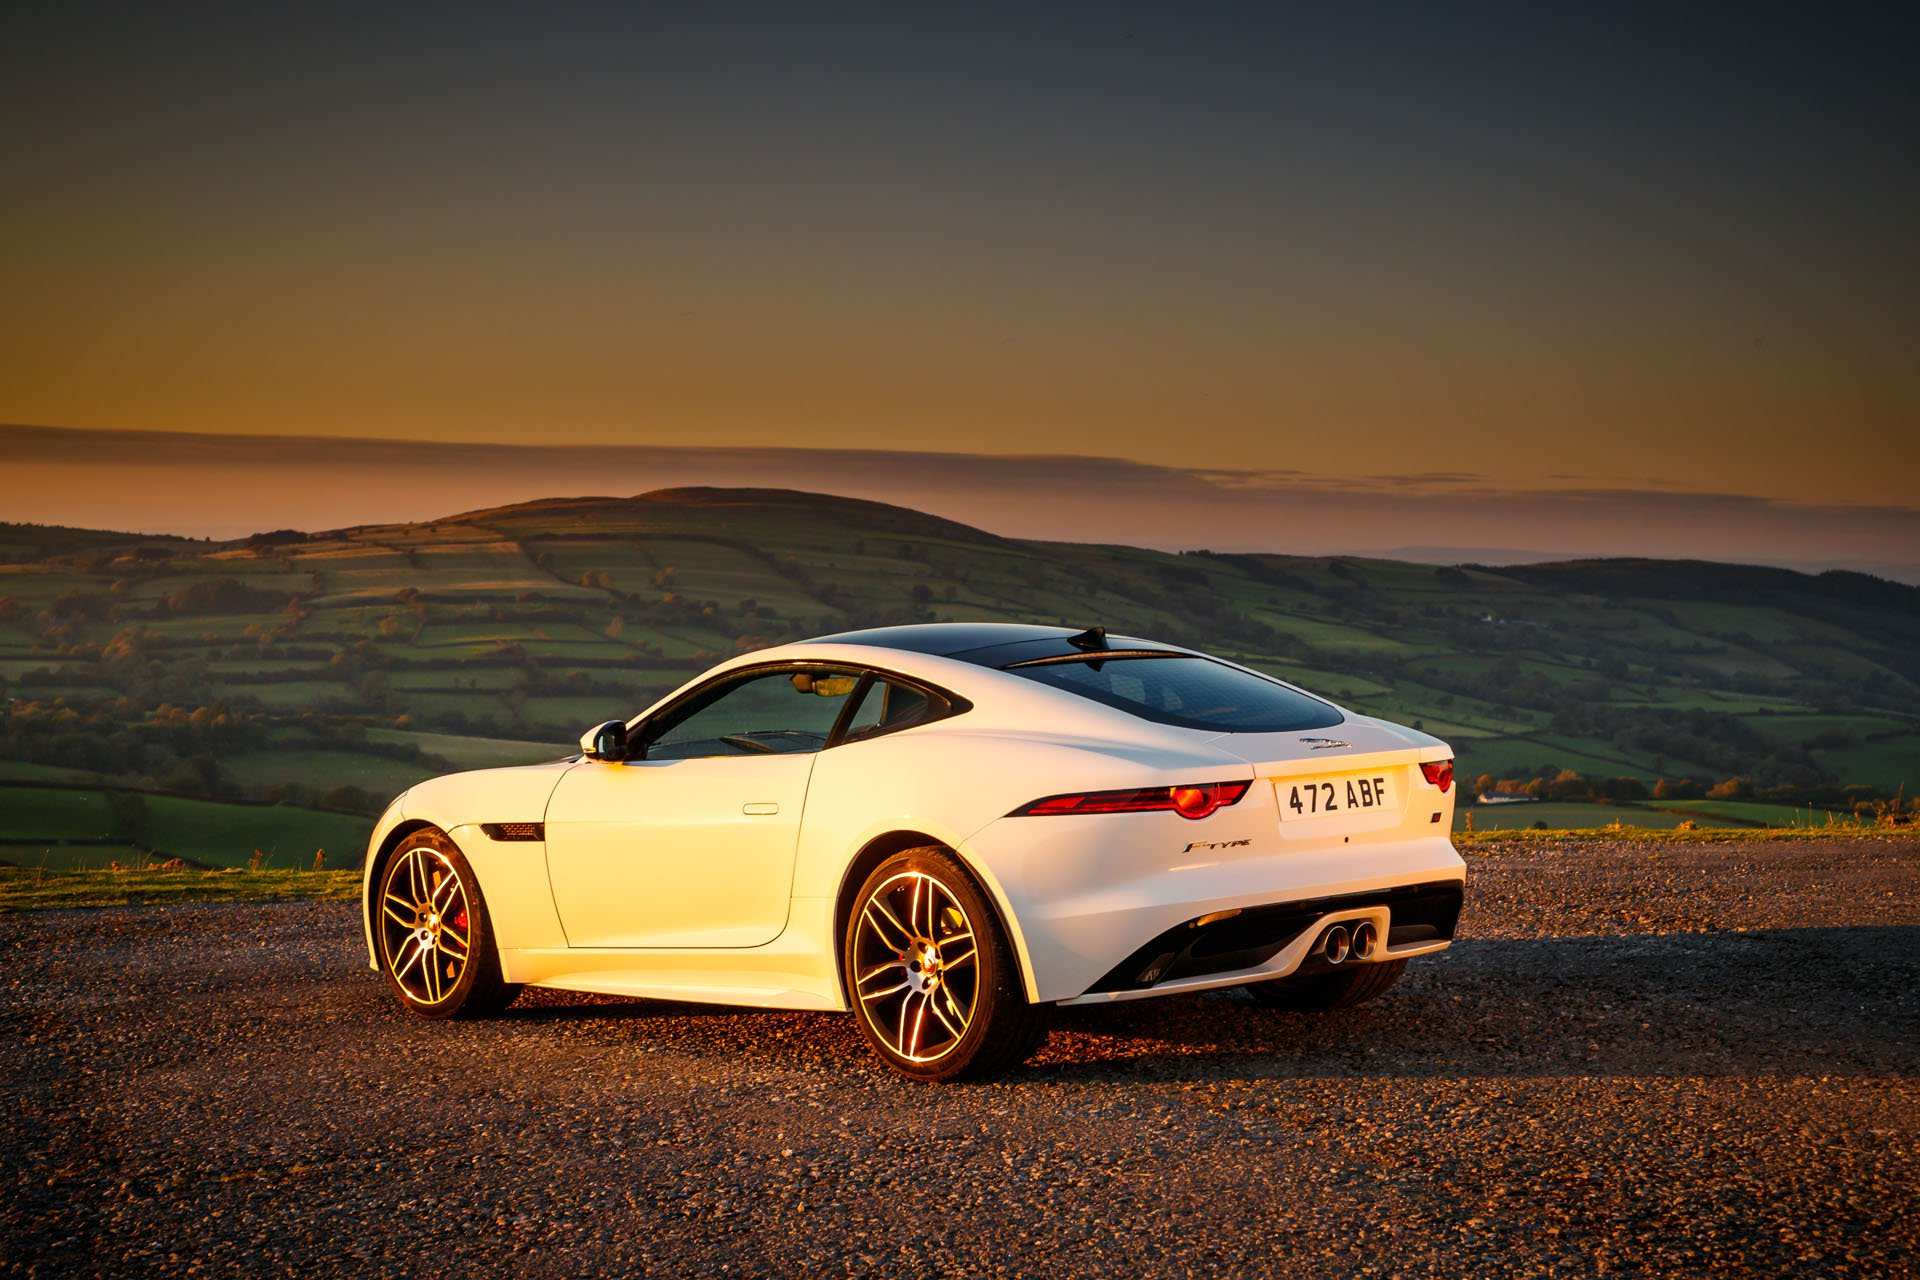 Jaguar F-Type Four-Door Coupe Looks Dashing